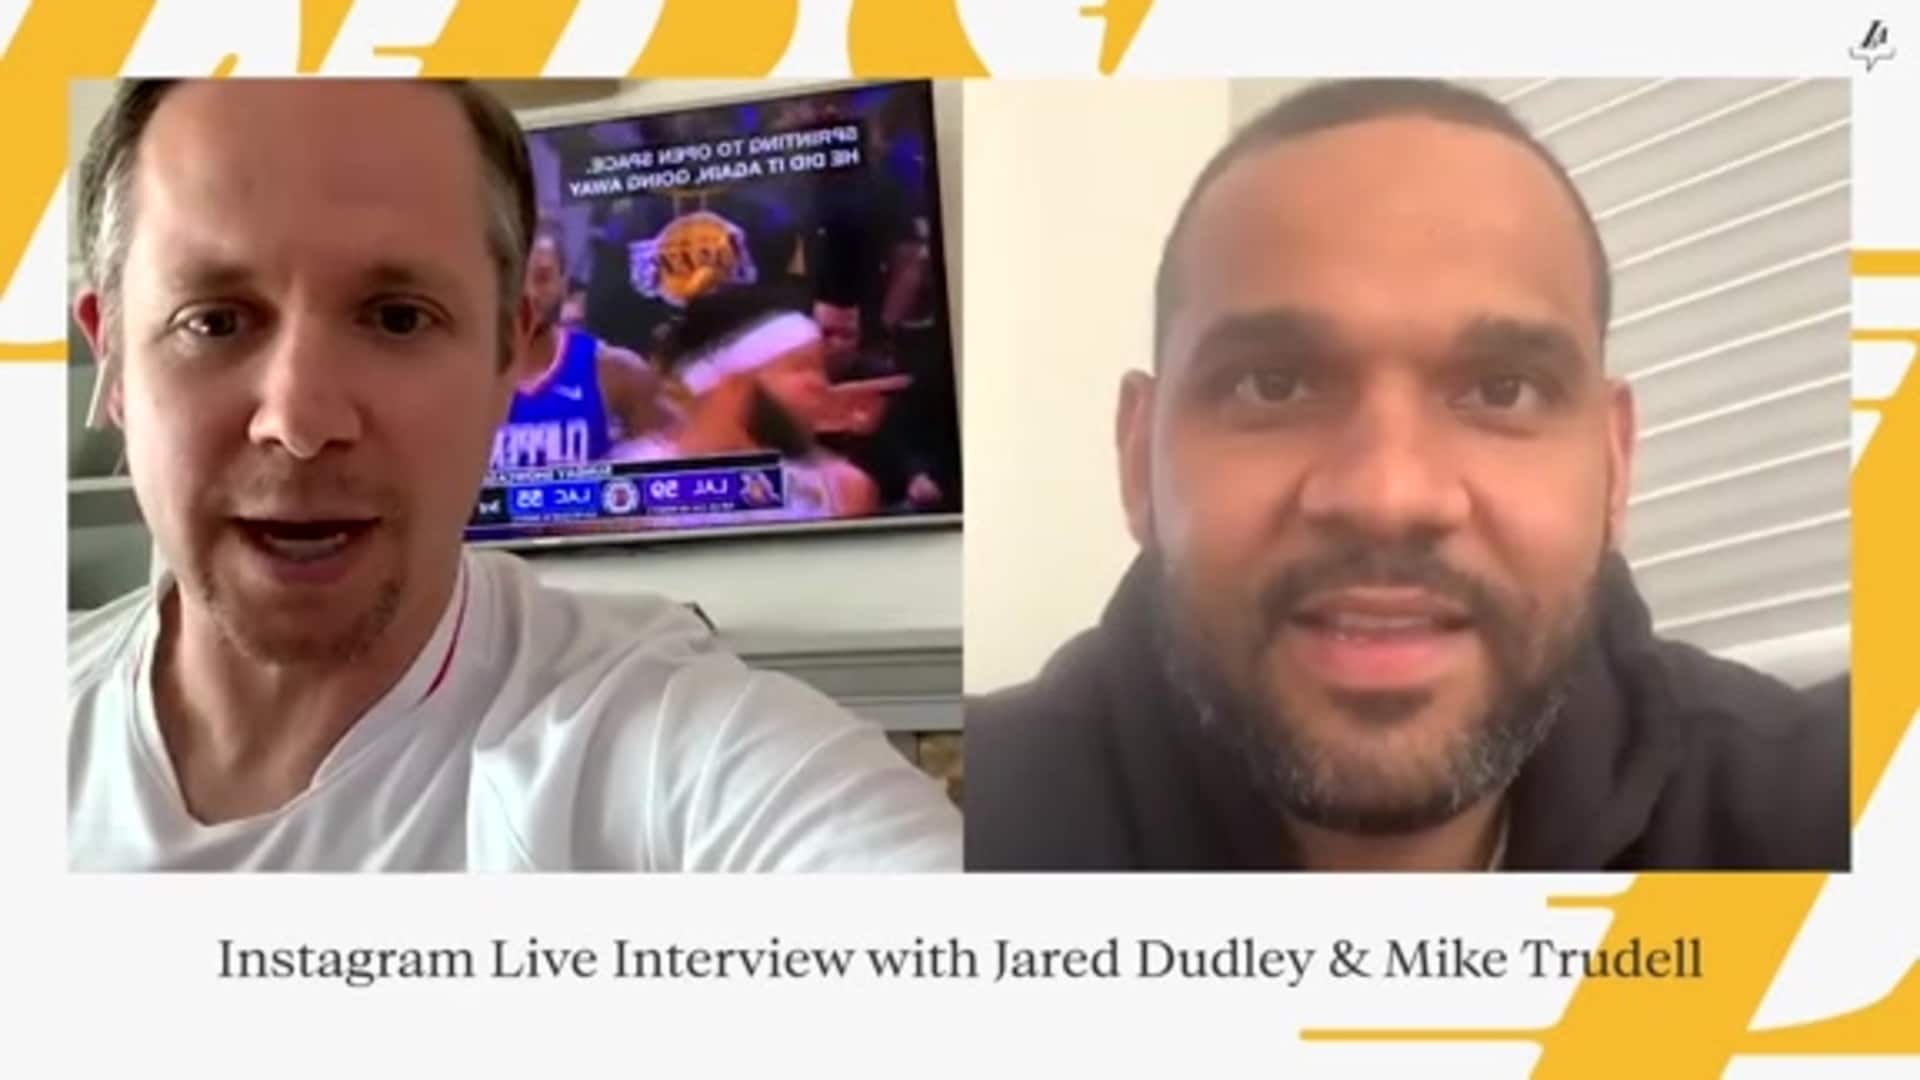 IG Live Interview: Jared Dudley joins Mike Trudell for an exclusive #LakeShow interview